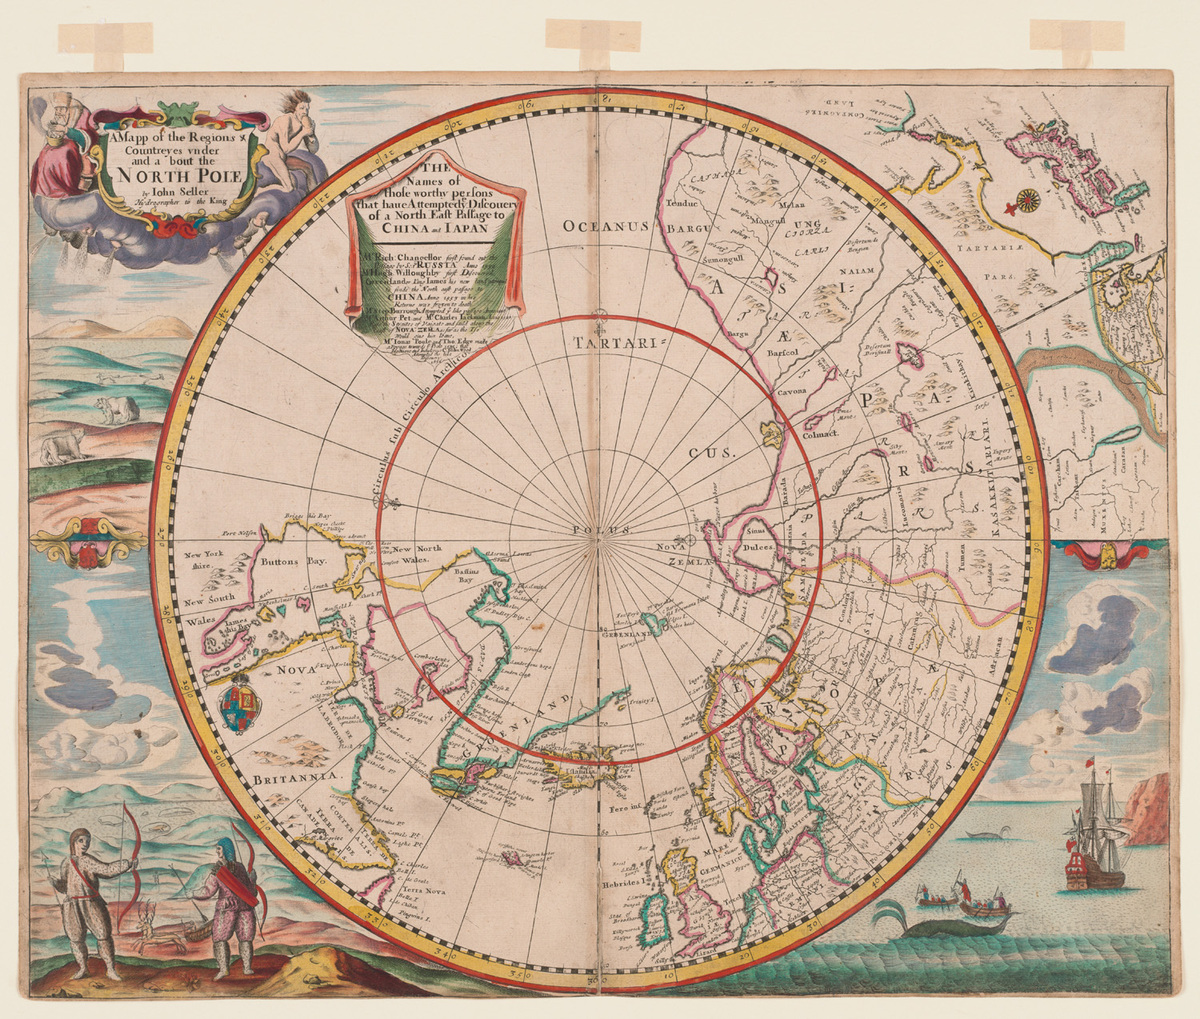 Mapp of Regions and Countreyes Under and About the North Pole.